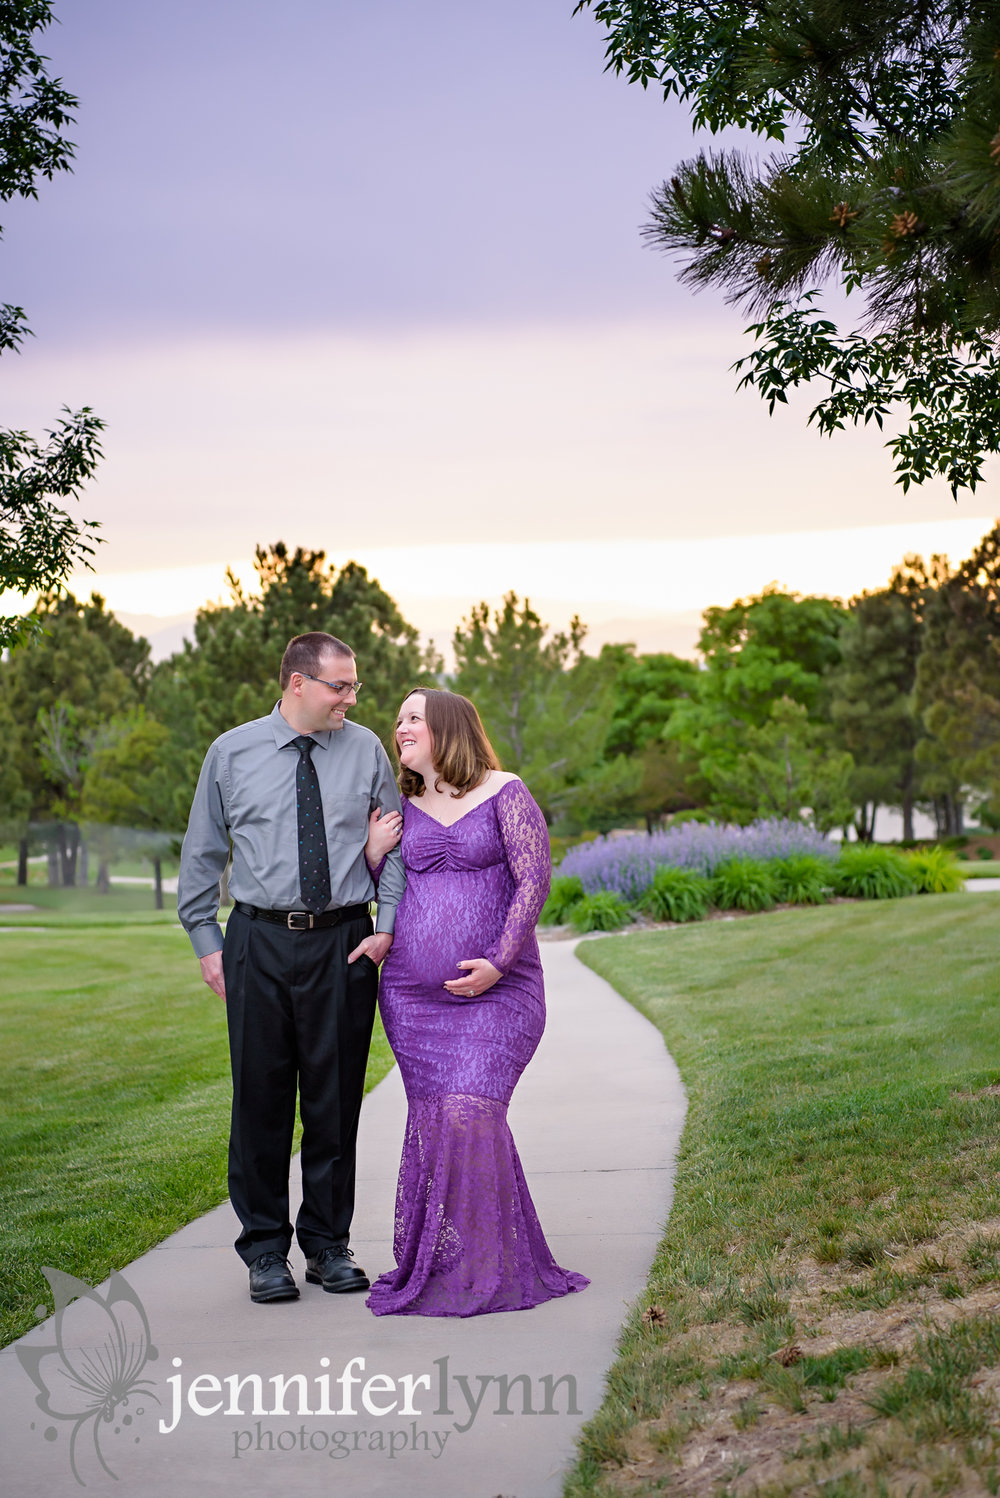 Maternity Couple Path at Sunset